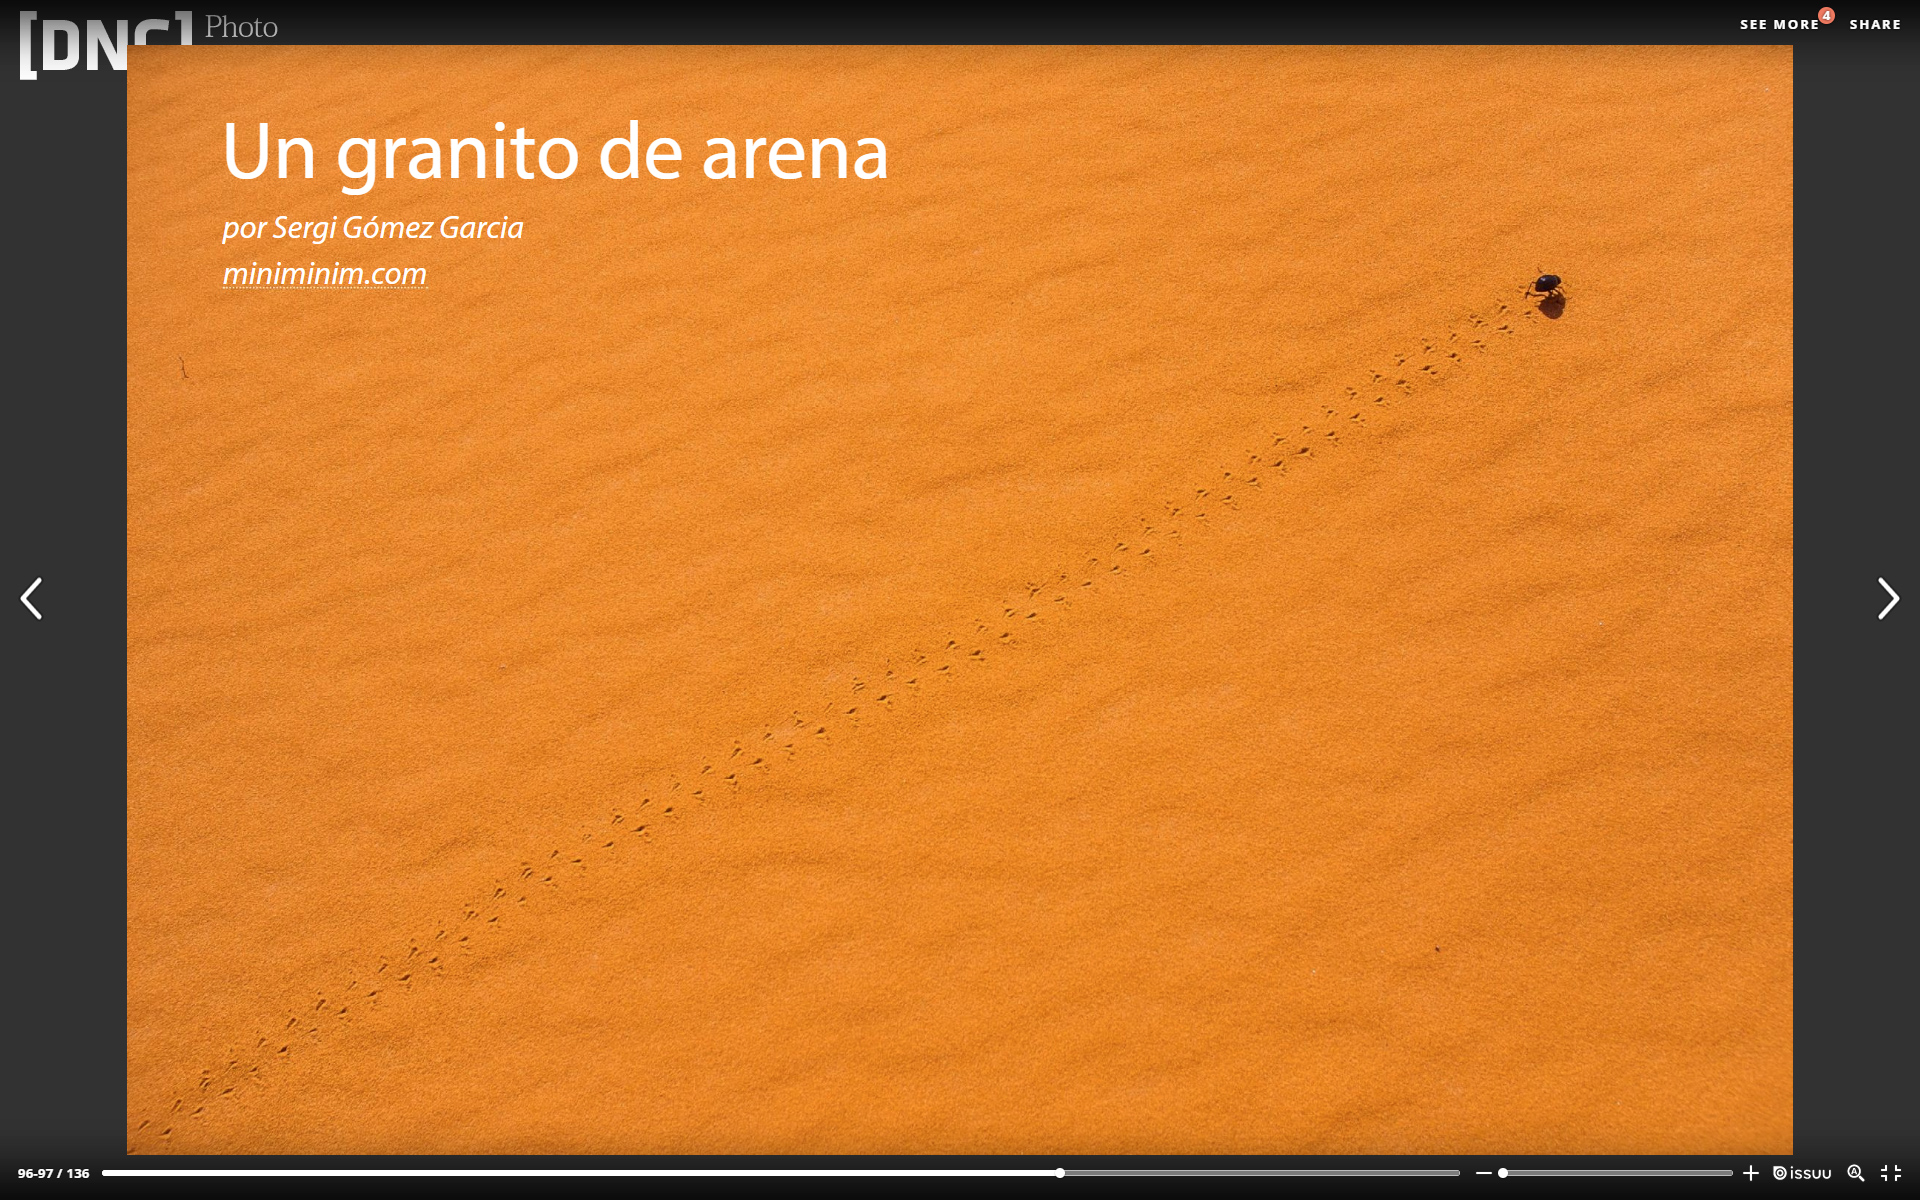 UN GRANO DE ARENA -DNG PHOTO MAGAZINE